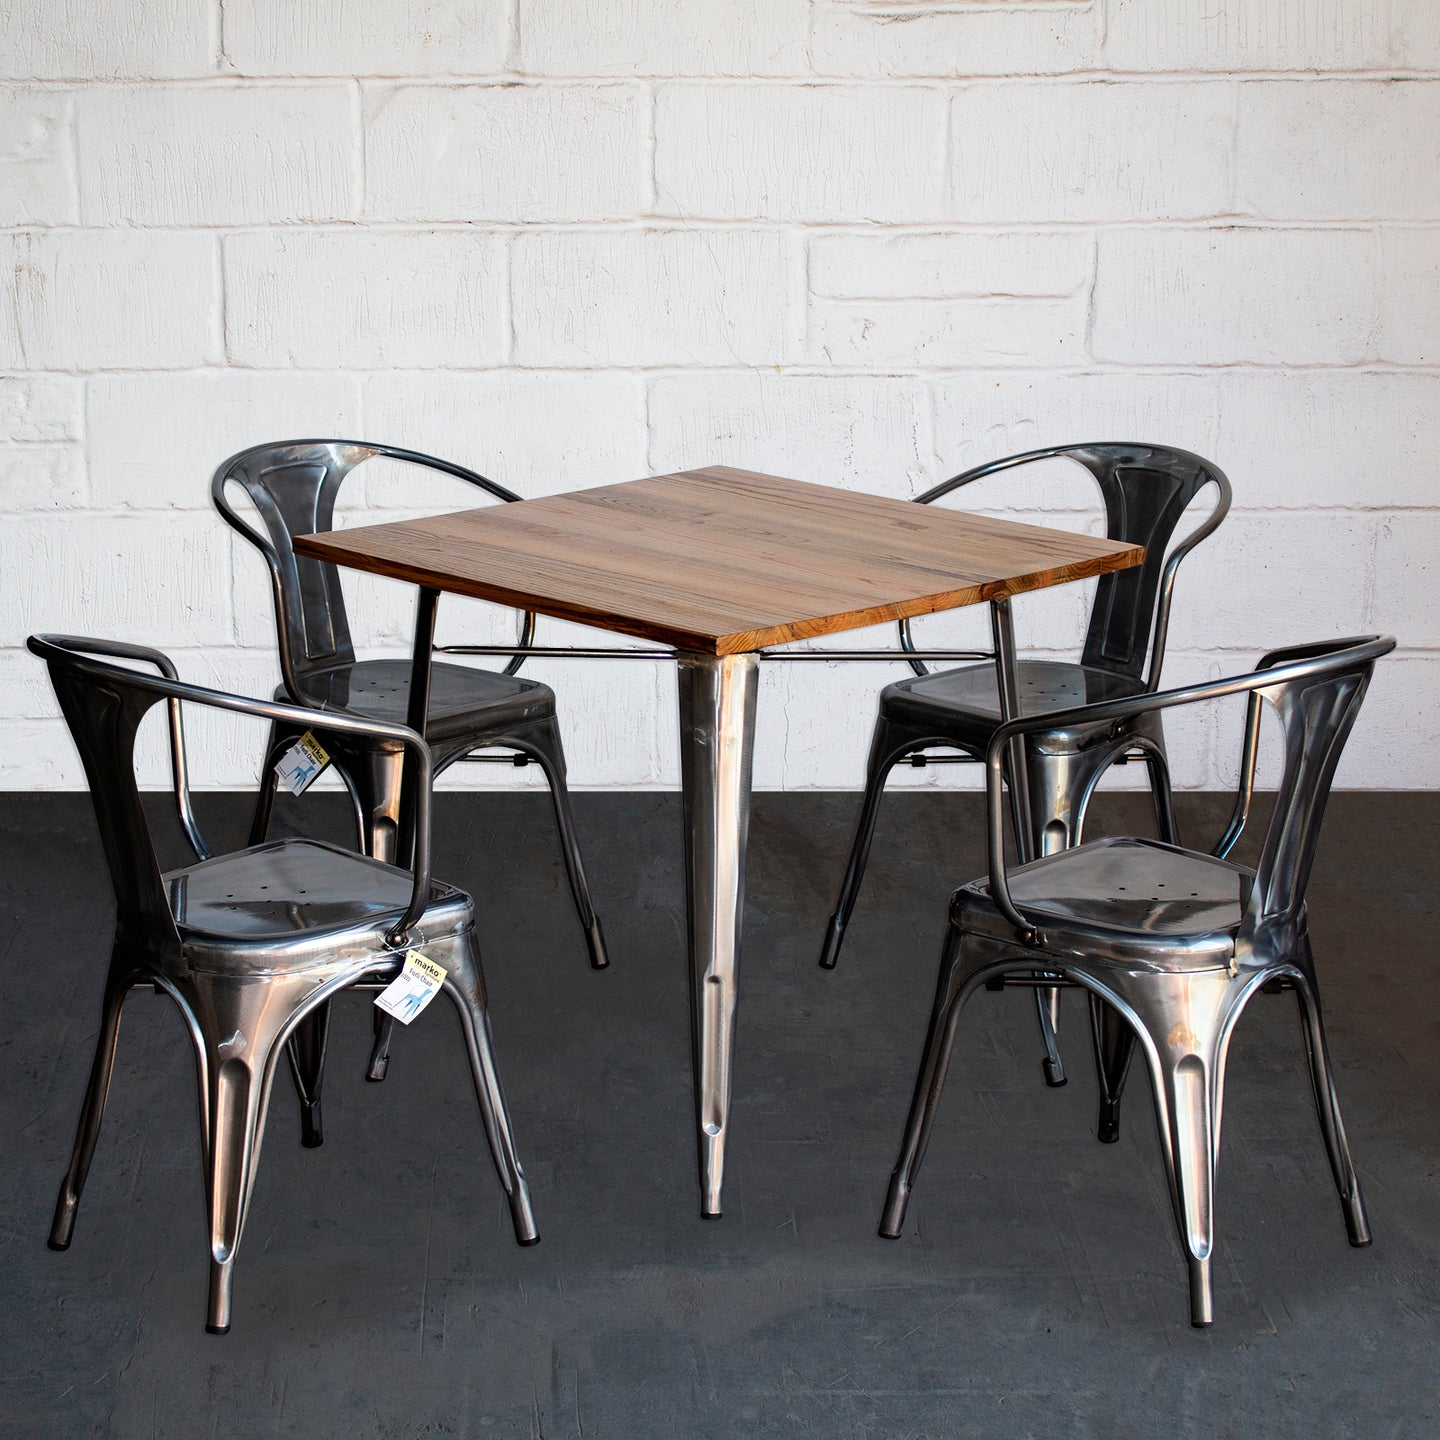 5PC Enna Table & Forli Chair Set - Steel